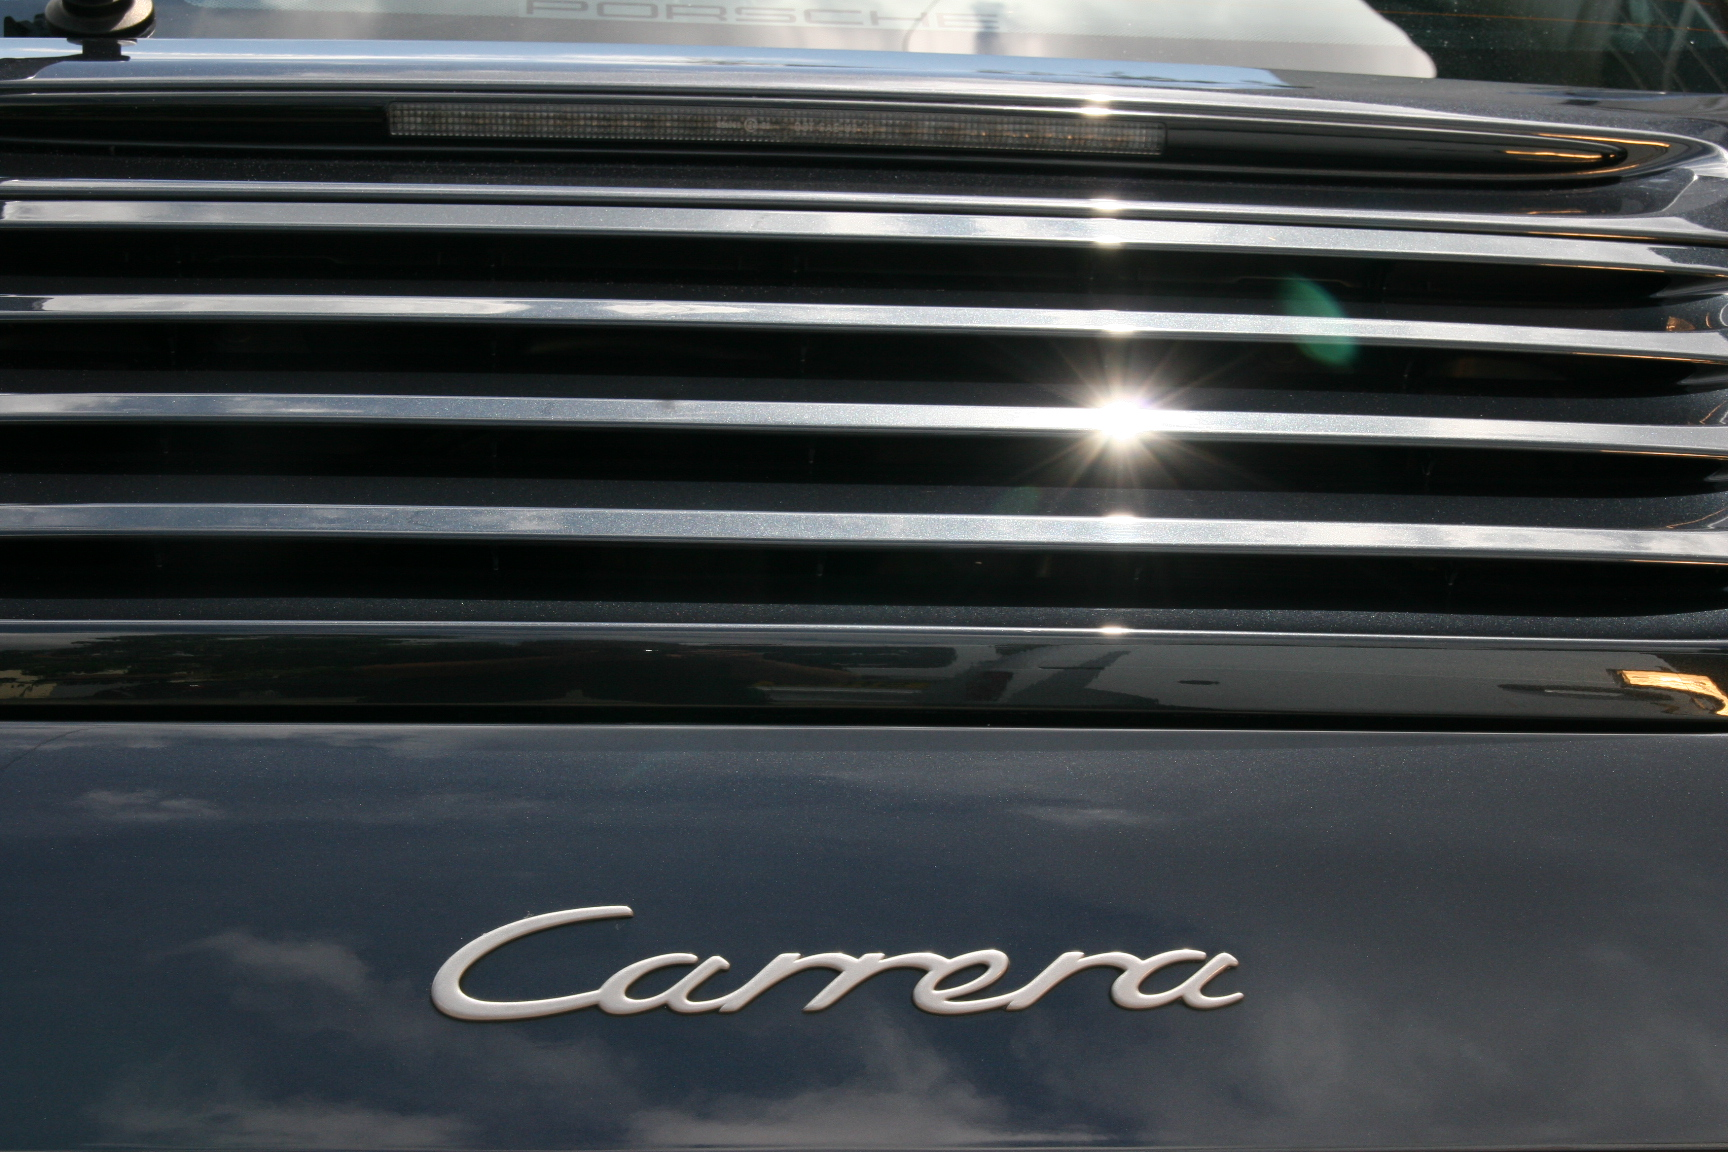 porsche-carrera-car-detailing-surrey-all-that-gleams-58_0